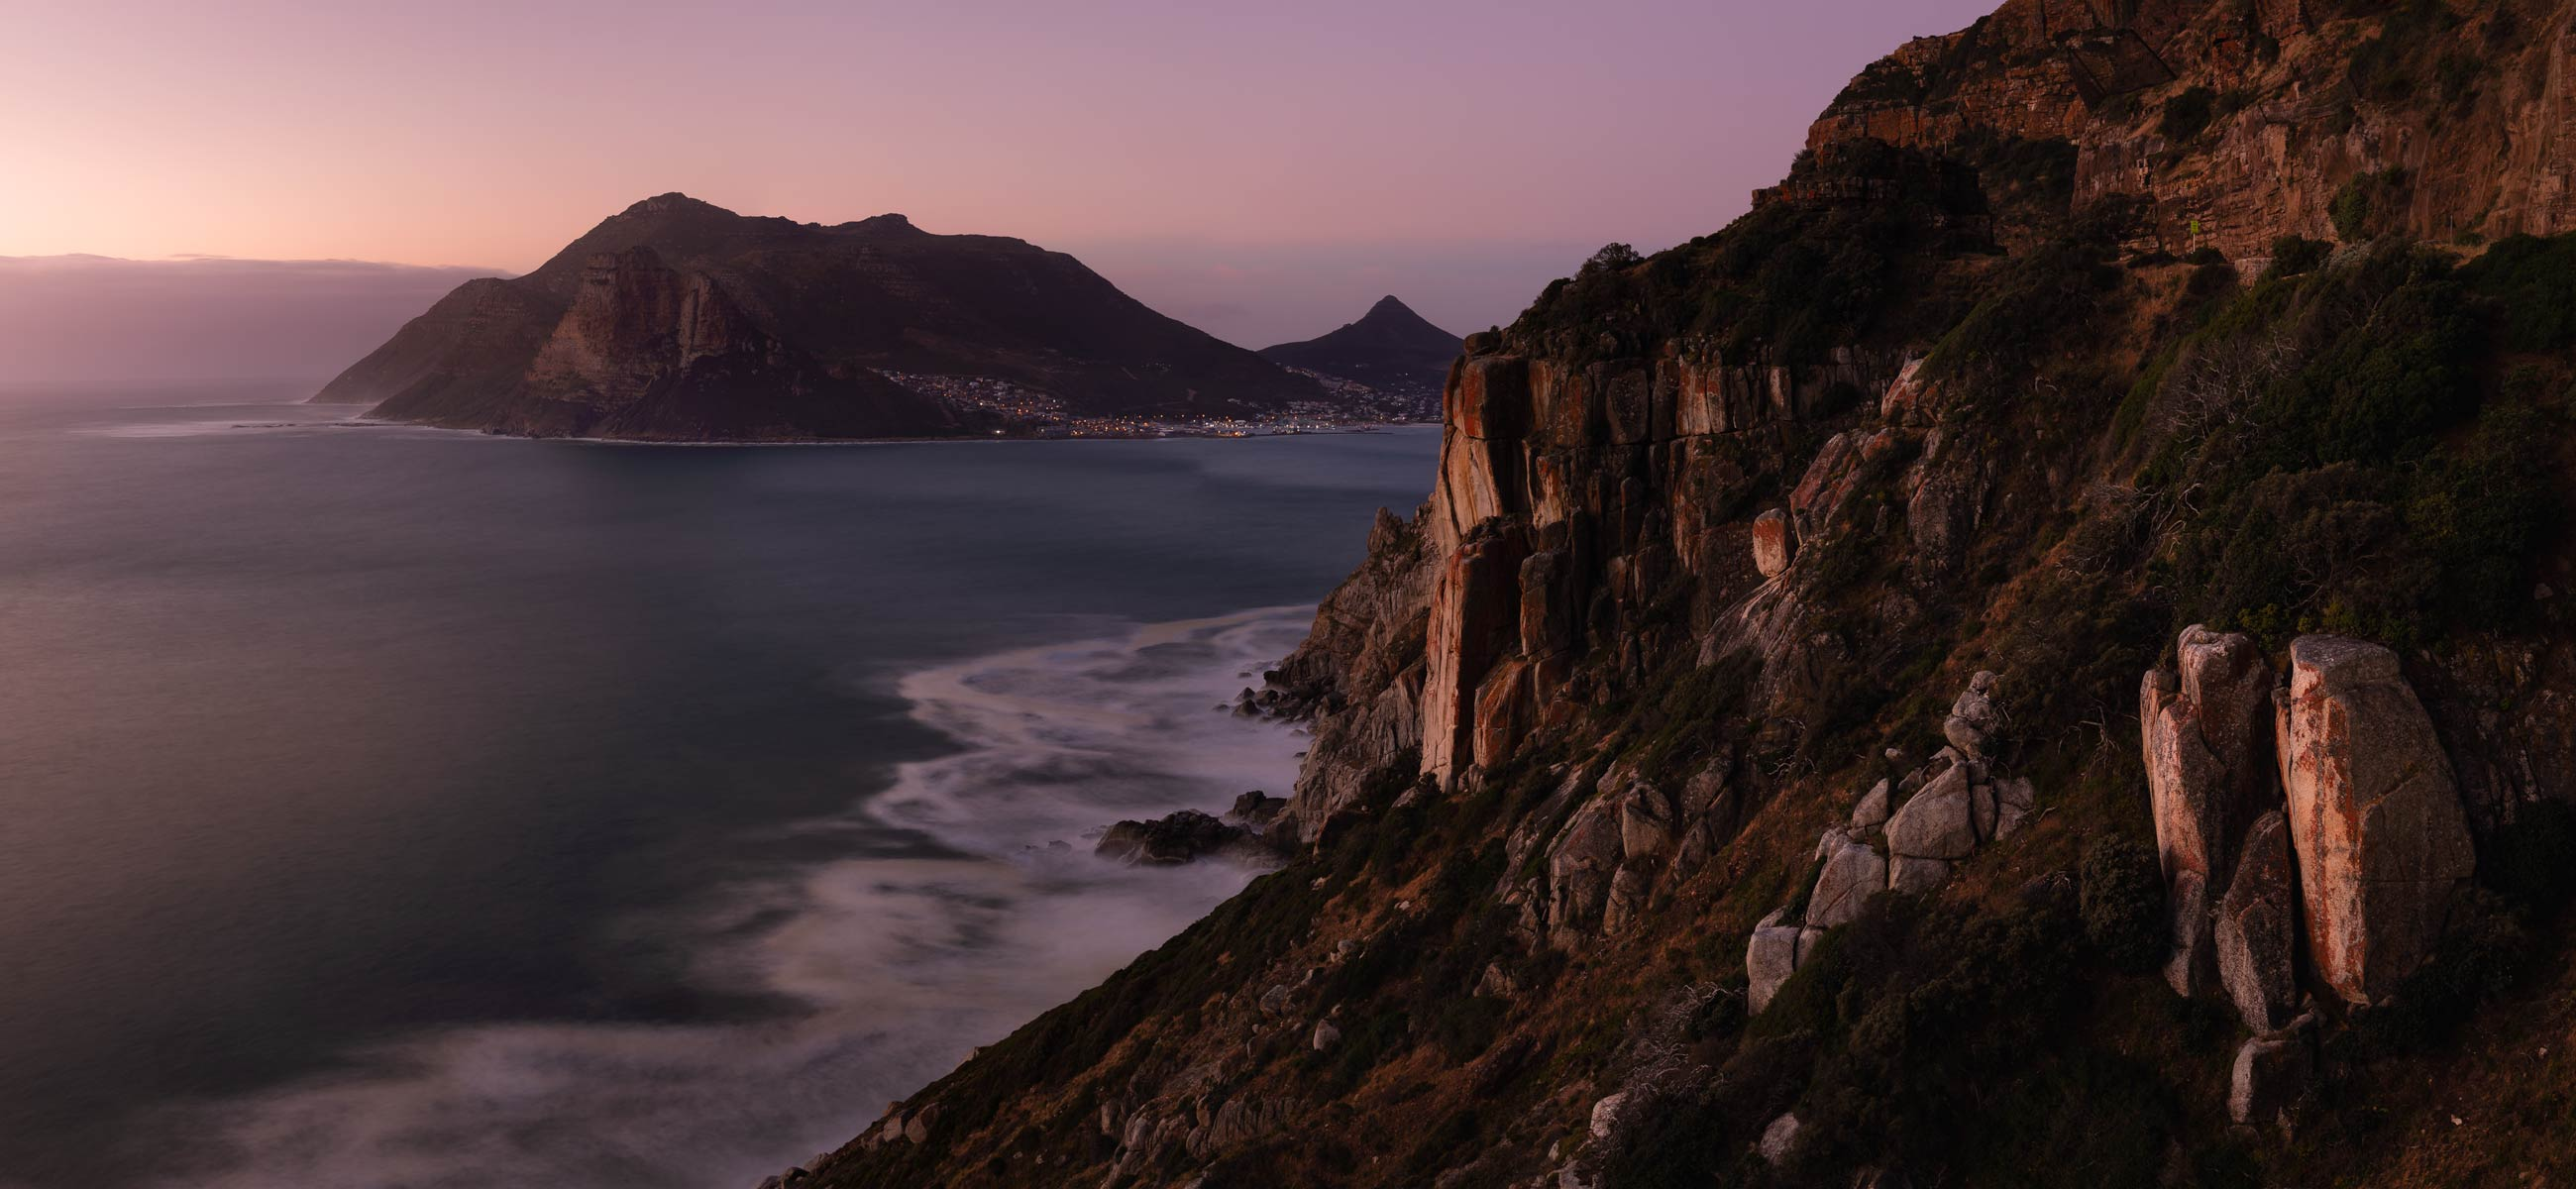 Chapman's Peak watching the Sentinel near Houtbay with a pink sky